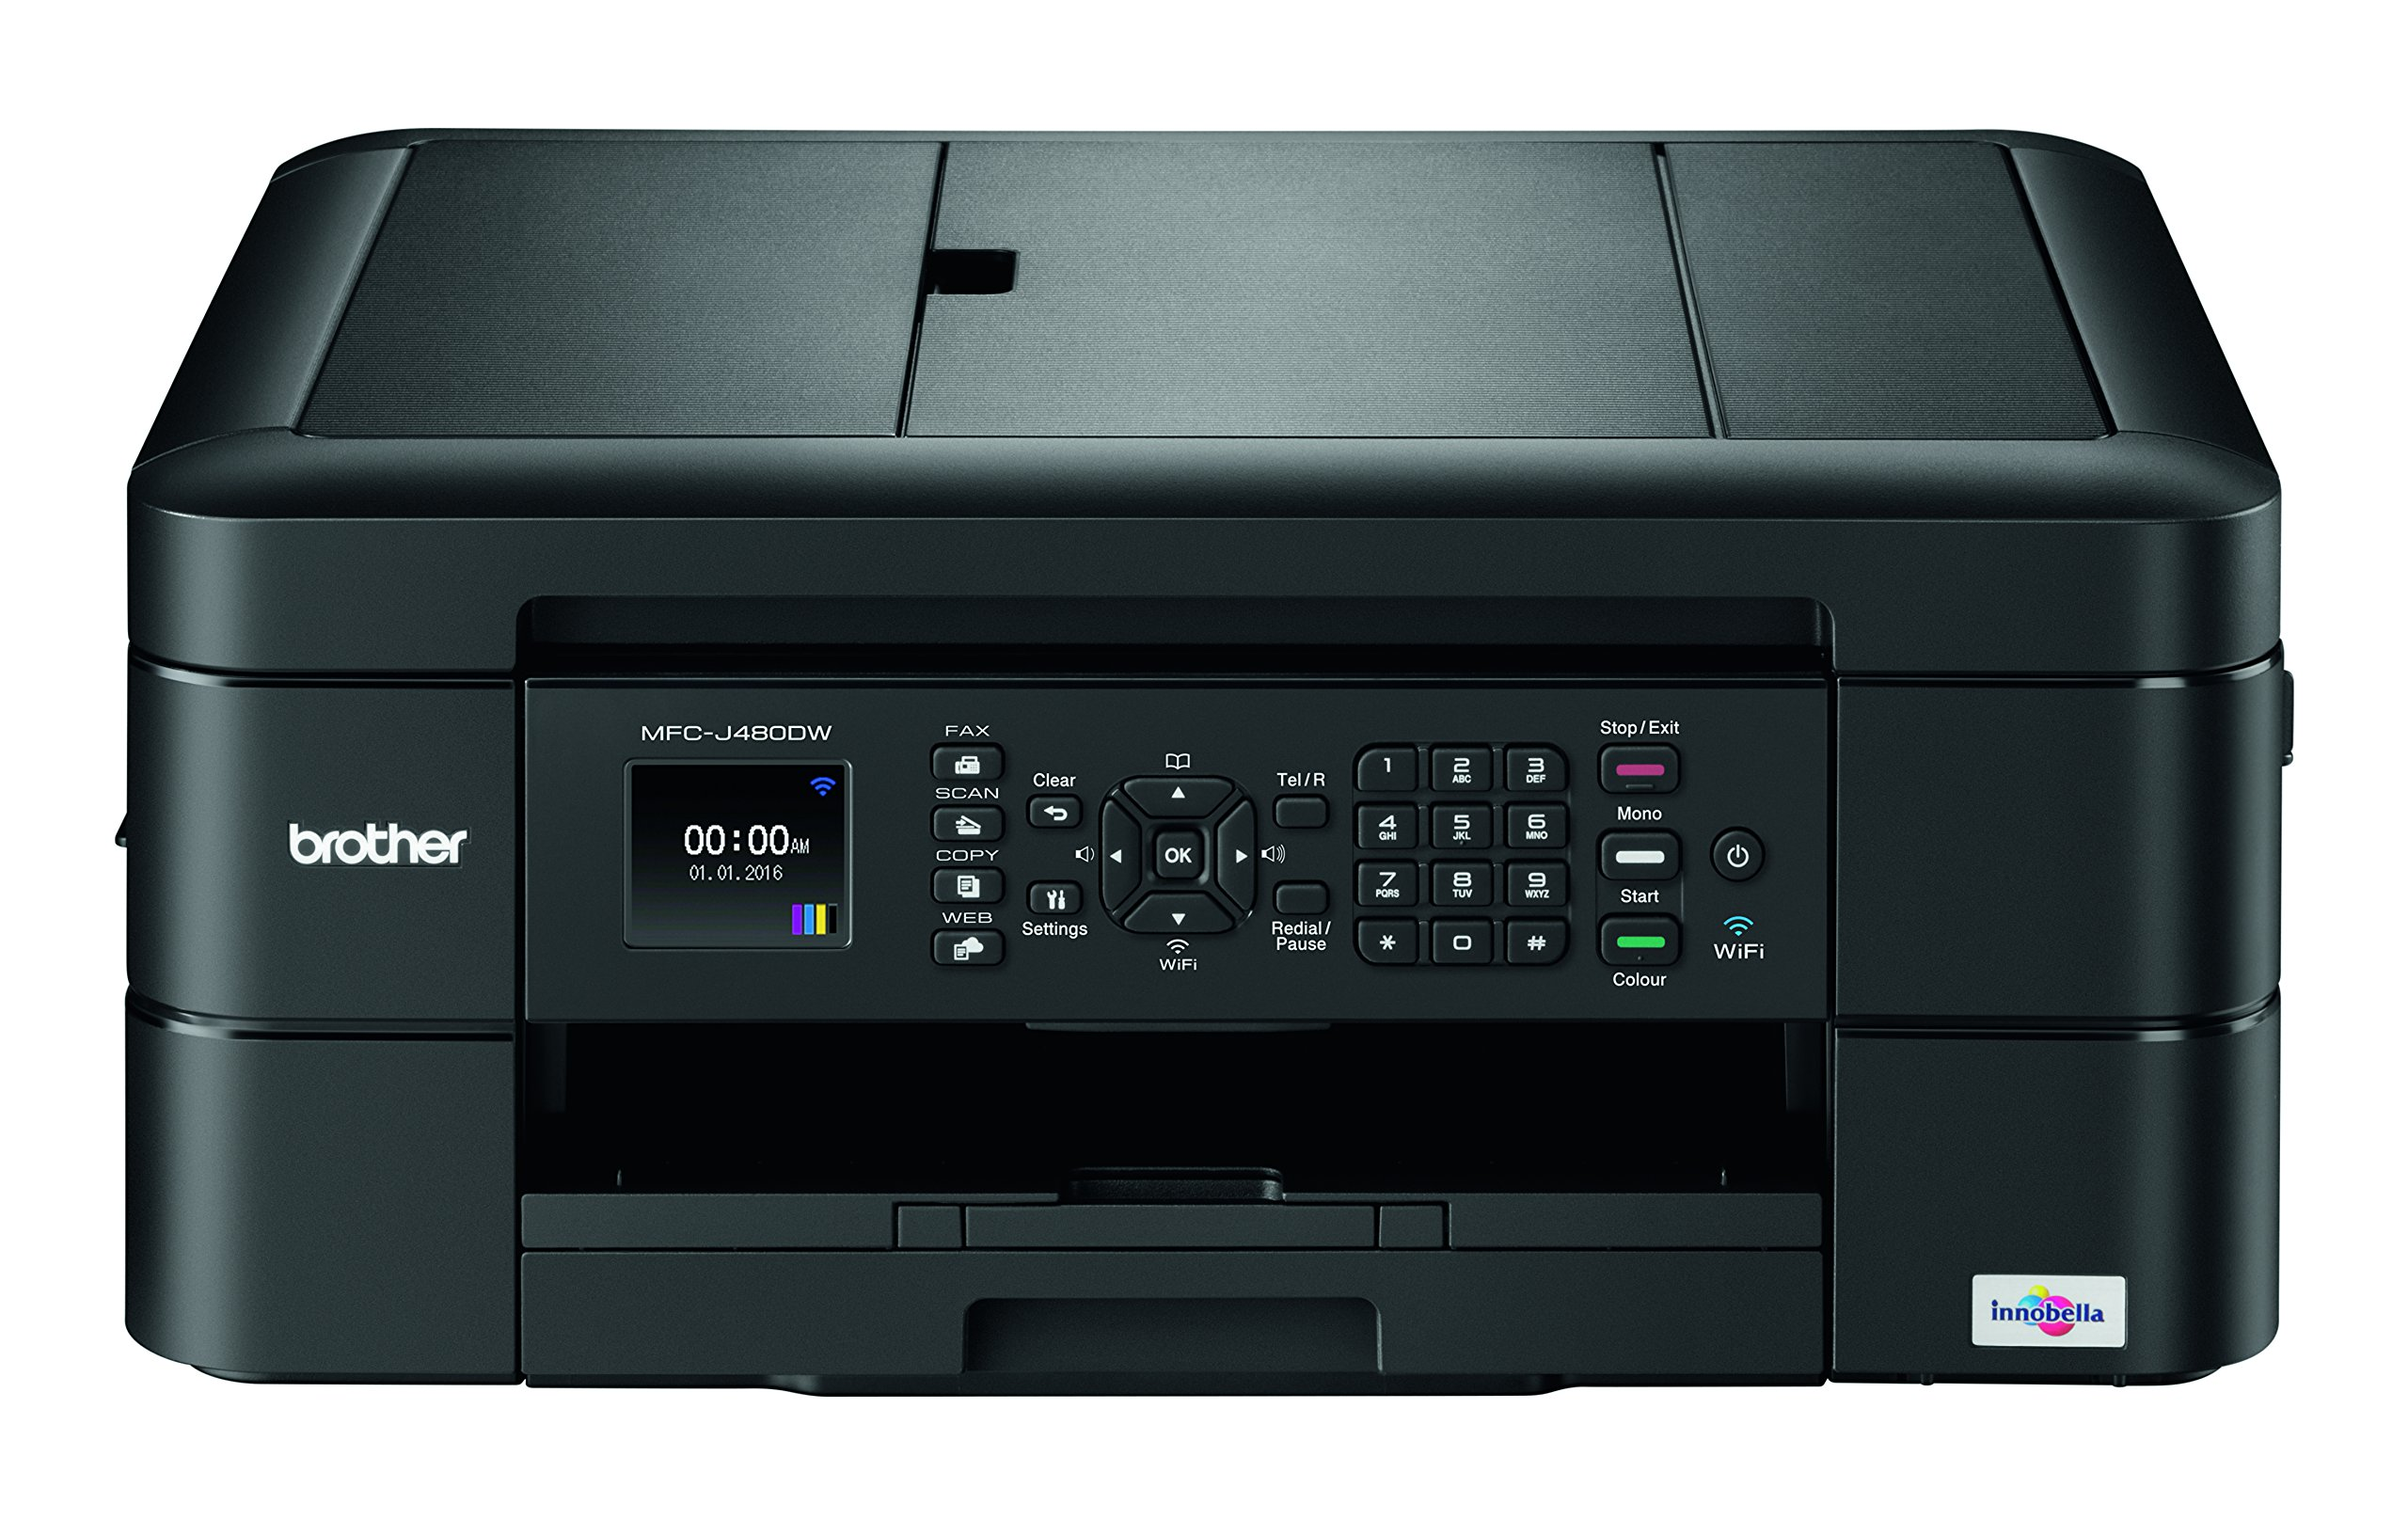 Brother MFC-J480dw Wireless Inkjet Color All-in-One Printer with Auto Document Feeder Dash Replenishment Enabled 1.8''